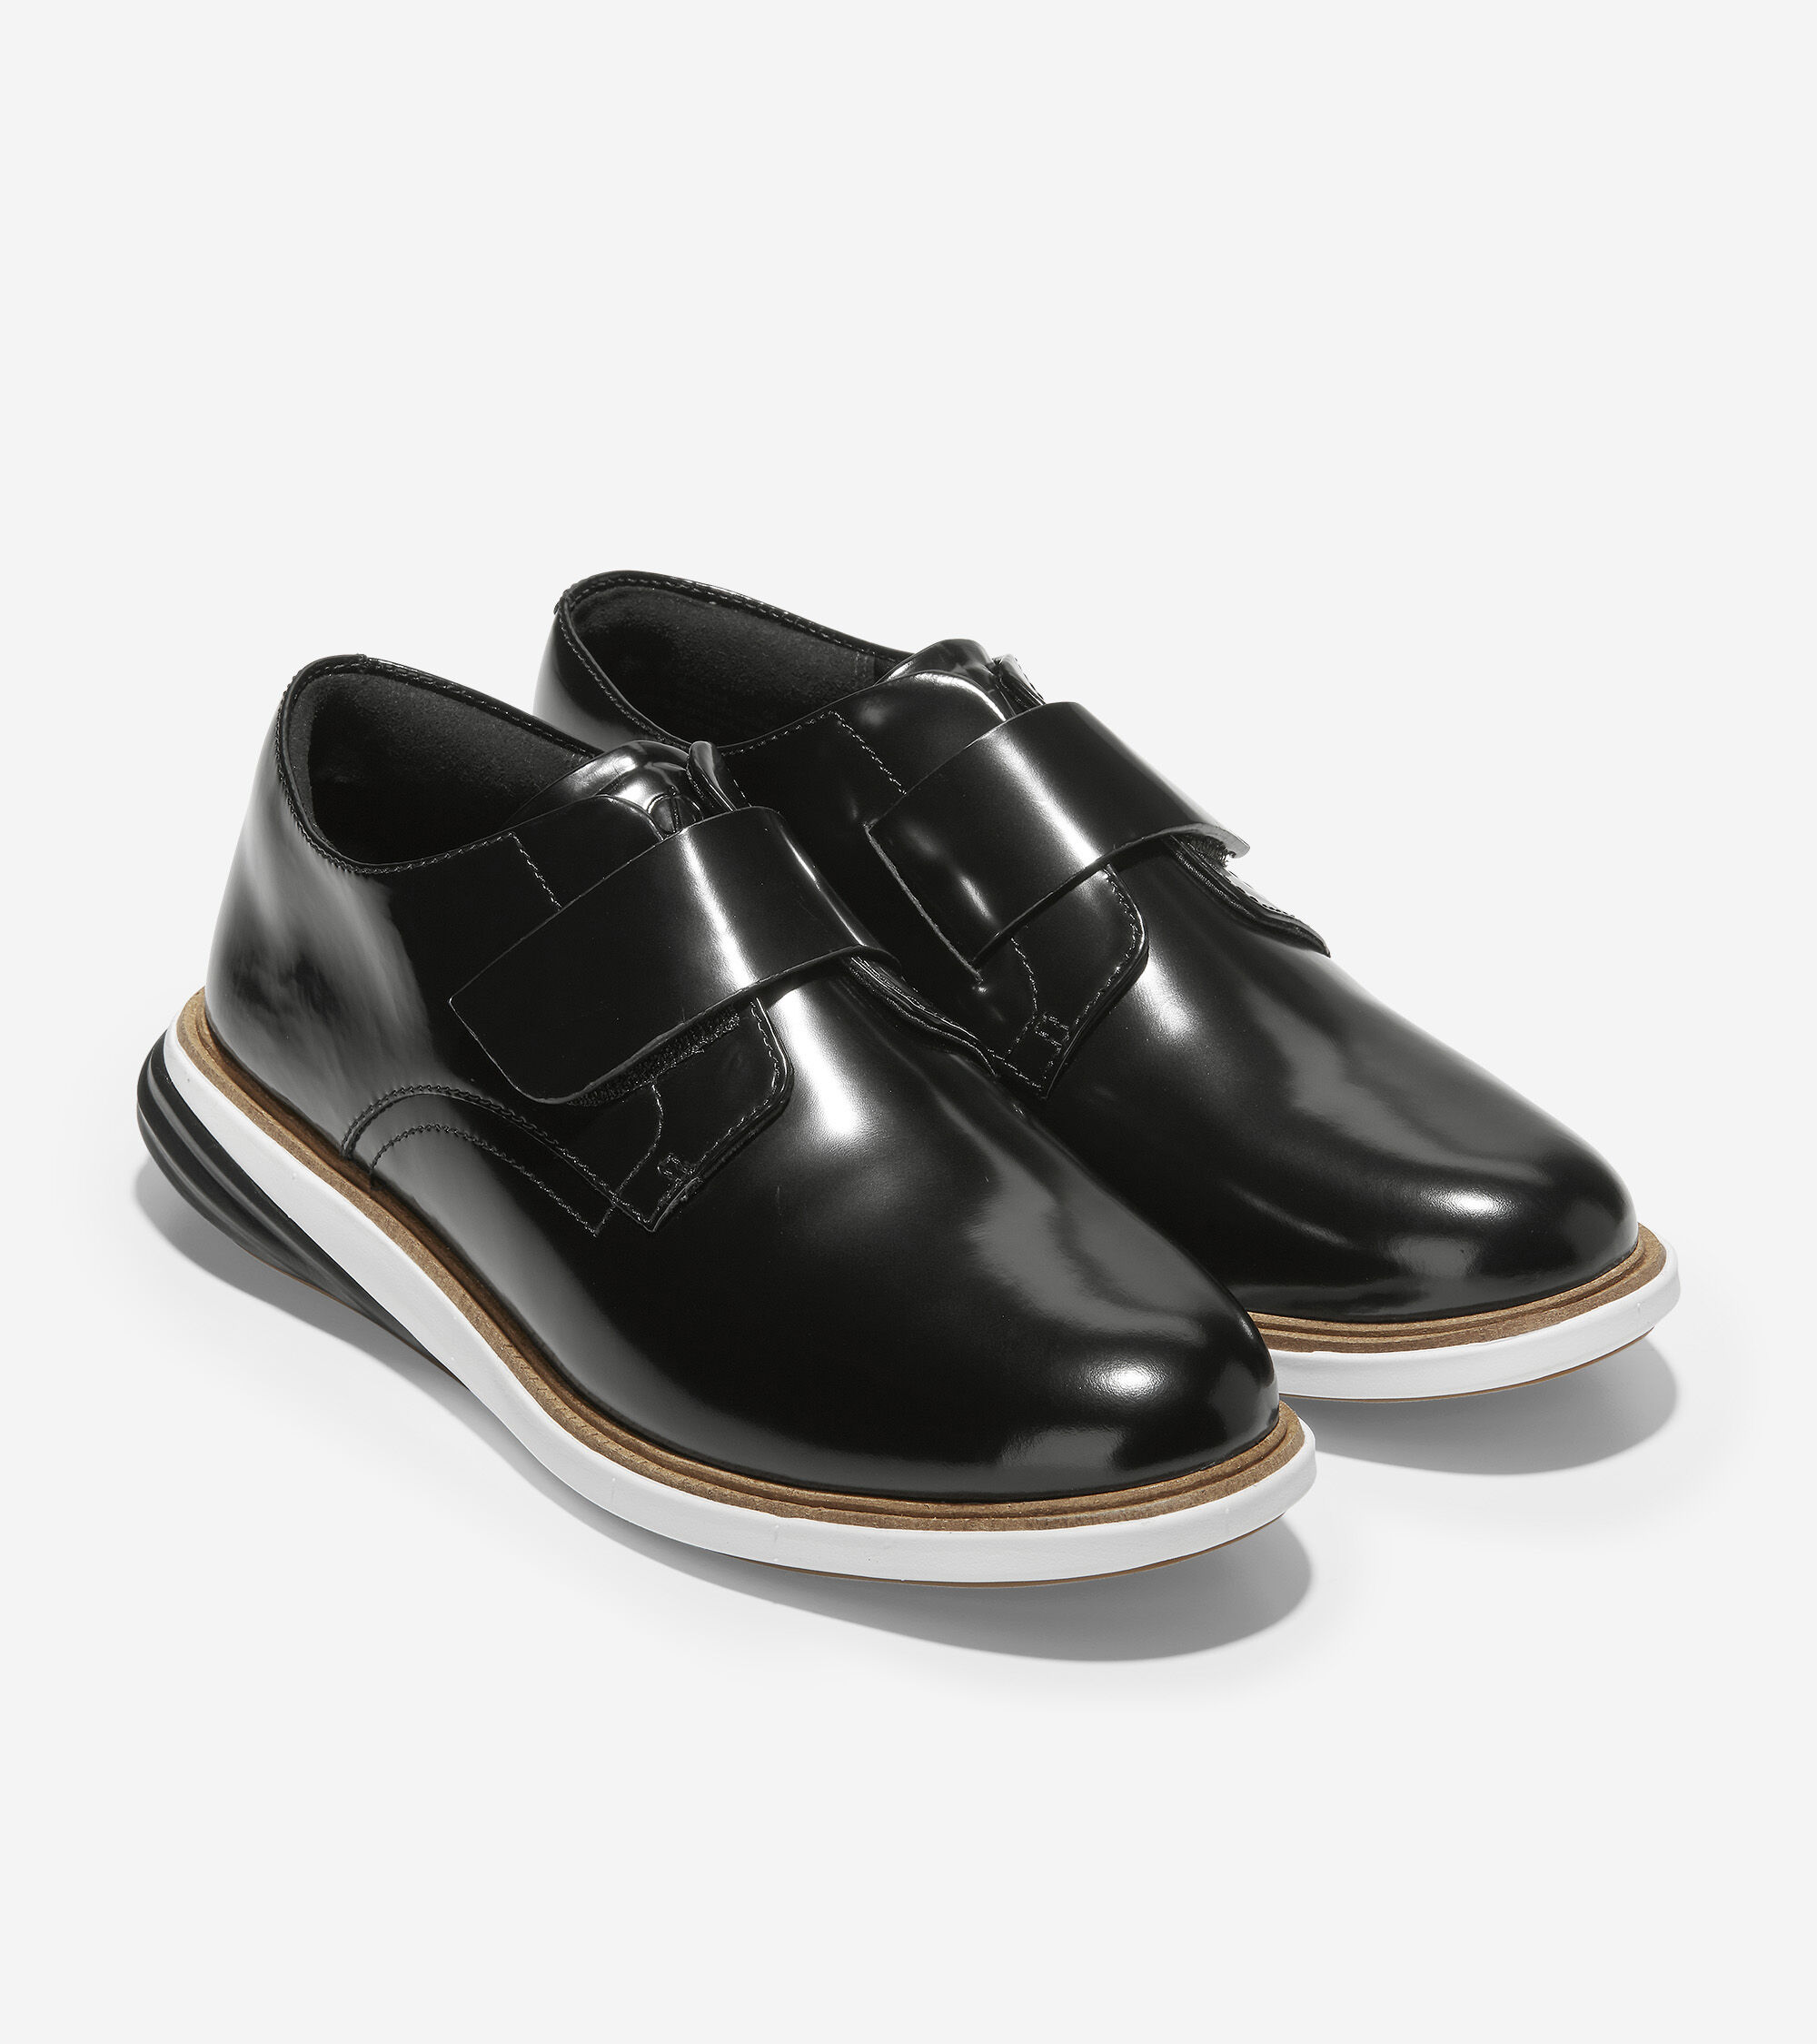 cole haan shoes defective products in pharma technologist 717915